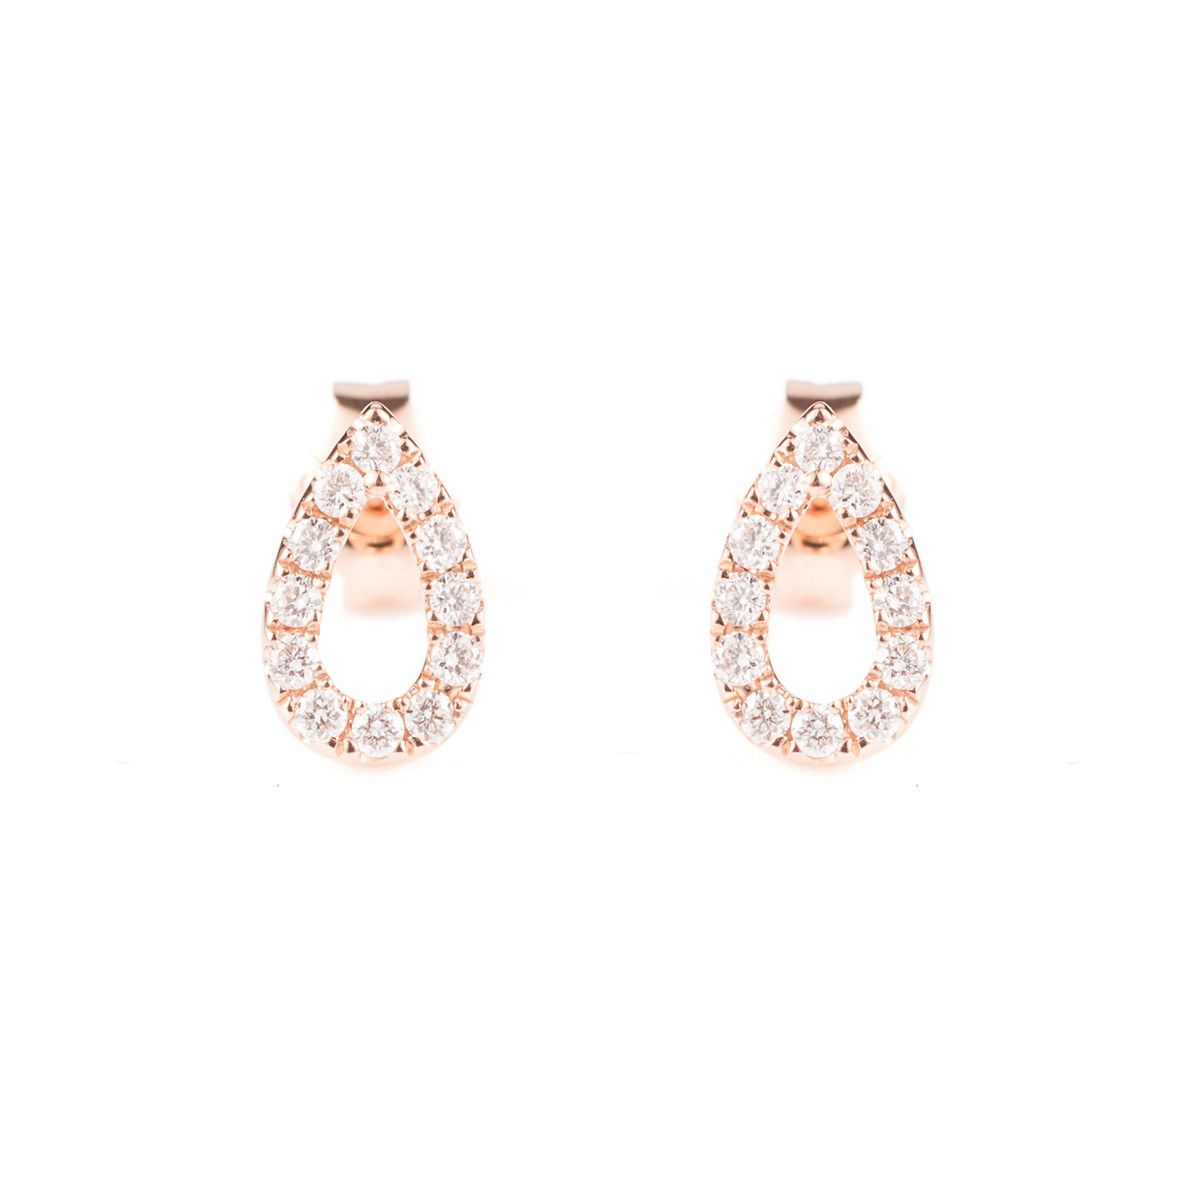 7c13b233d The Graceful Pear Stud Earrings Rose Gold comes from Vea Fine Jewelry, a  Hong Kong based jewellery brand led by designer Janet Chow.